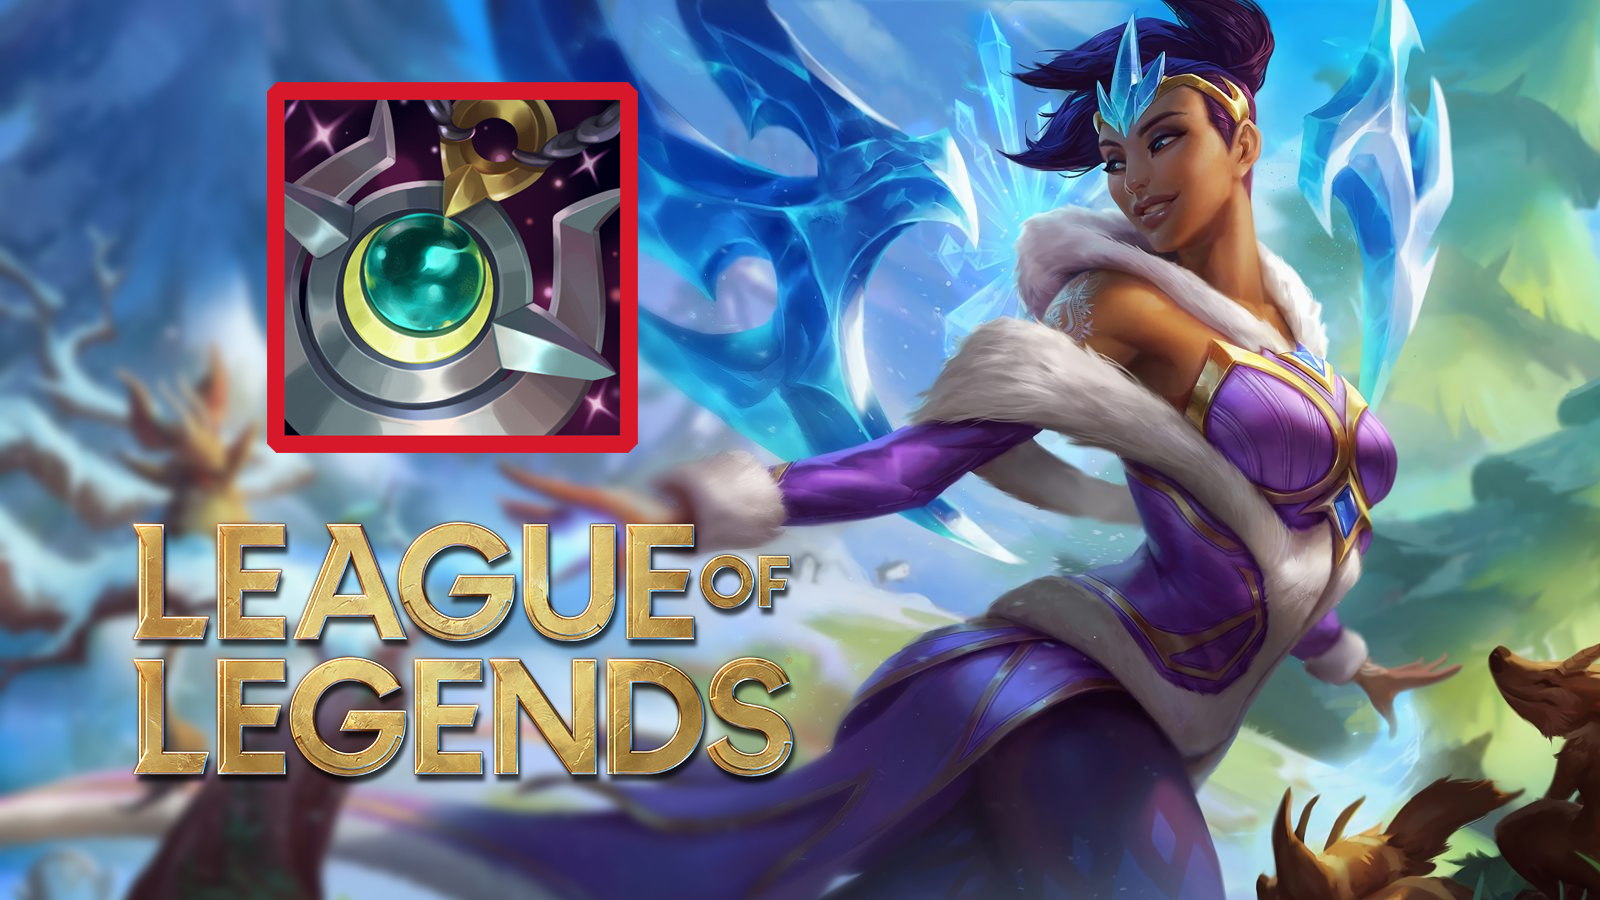 Winter Wonder Karma in League of Legends next to Moonstone Renewer